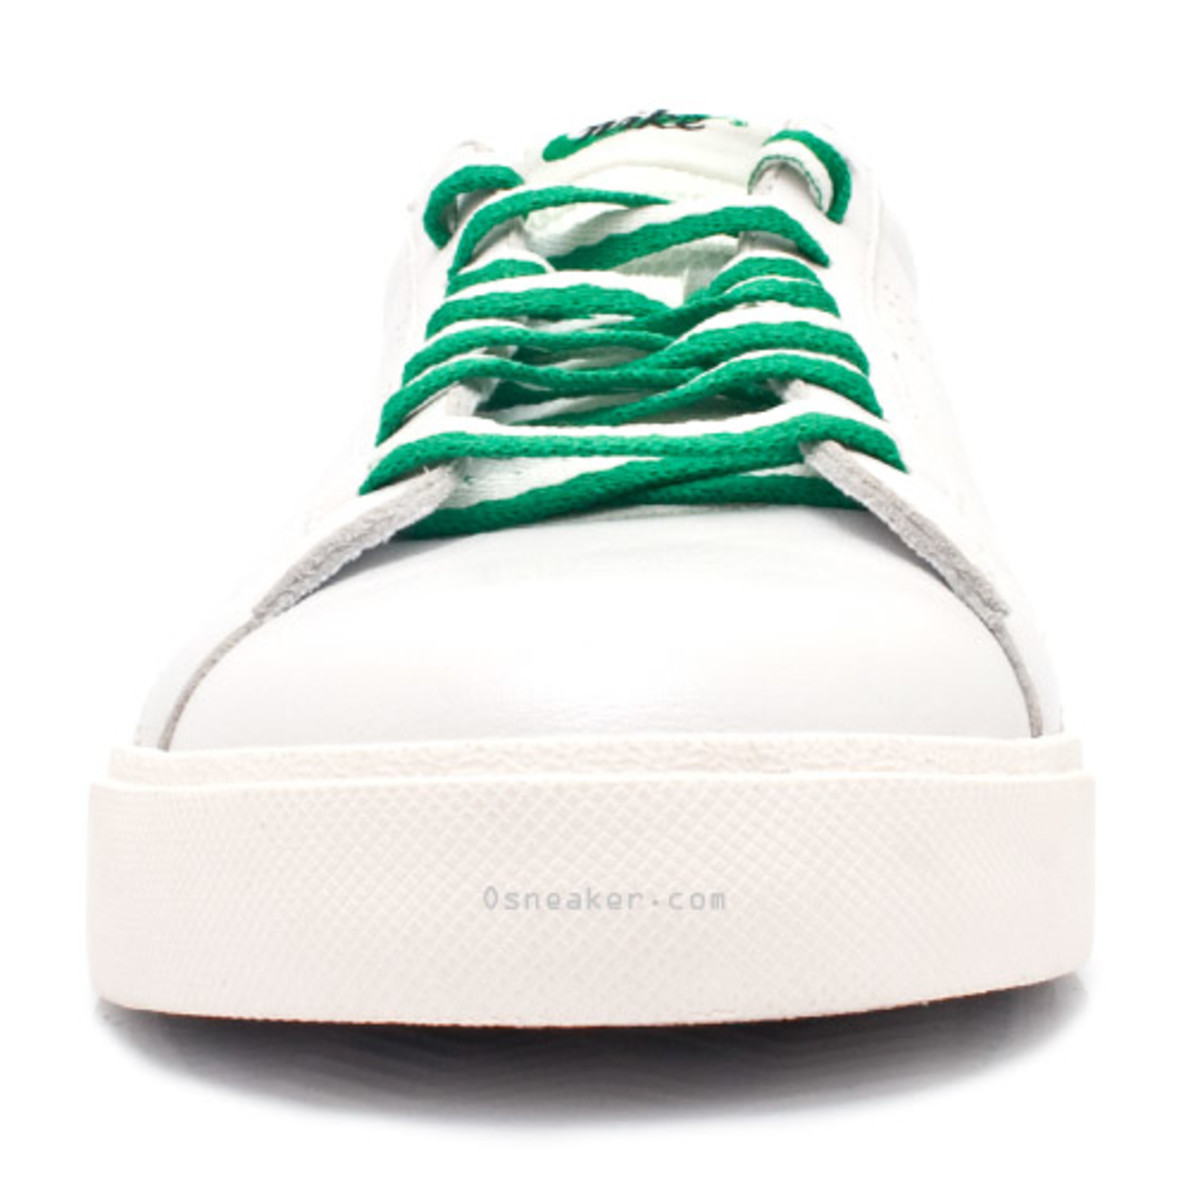 nike-tennis-classic-ac-nd-white-lucky-green-2